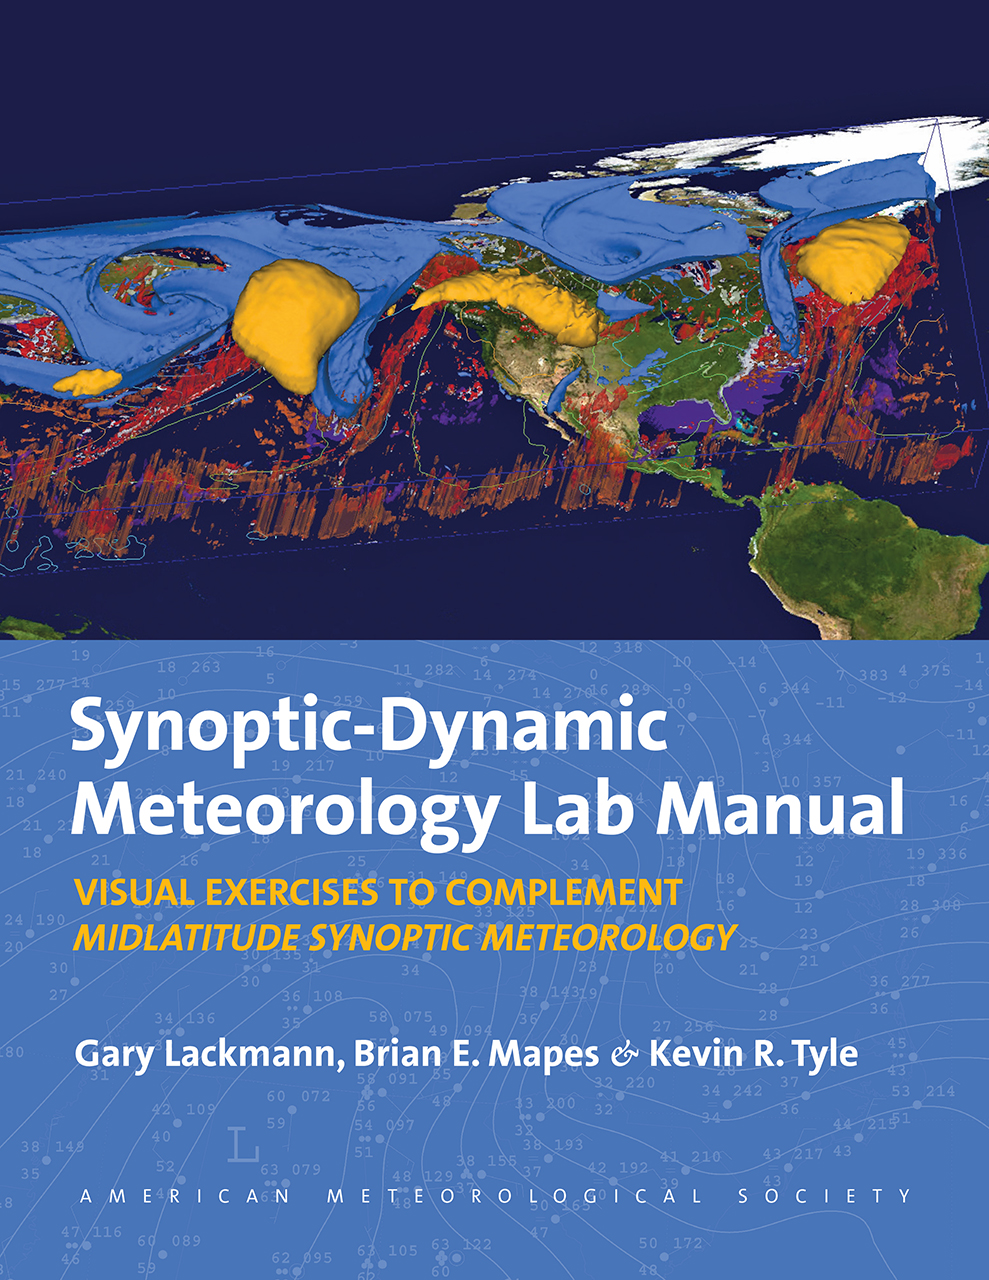 Synoptic-Dynamic Meteorology Lab Manual: Visual Exercises to Complement Midlatitude Synoptic Meteorology